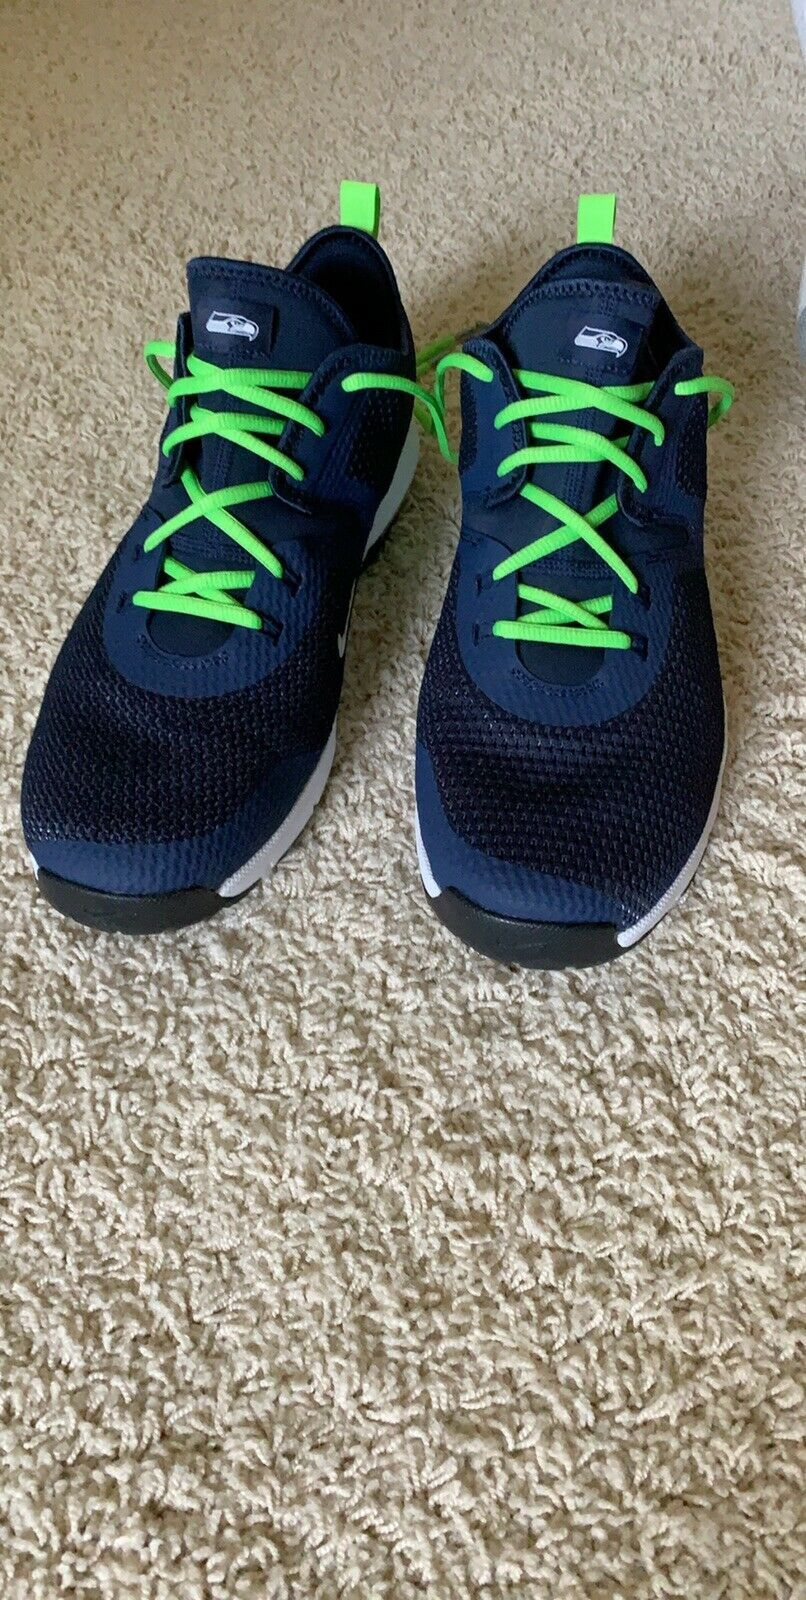 Size 13 Seahawks Nike Air Max TYPHA 2 shoes.